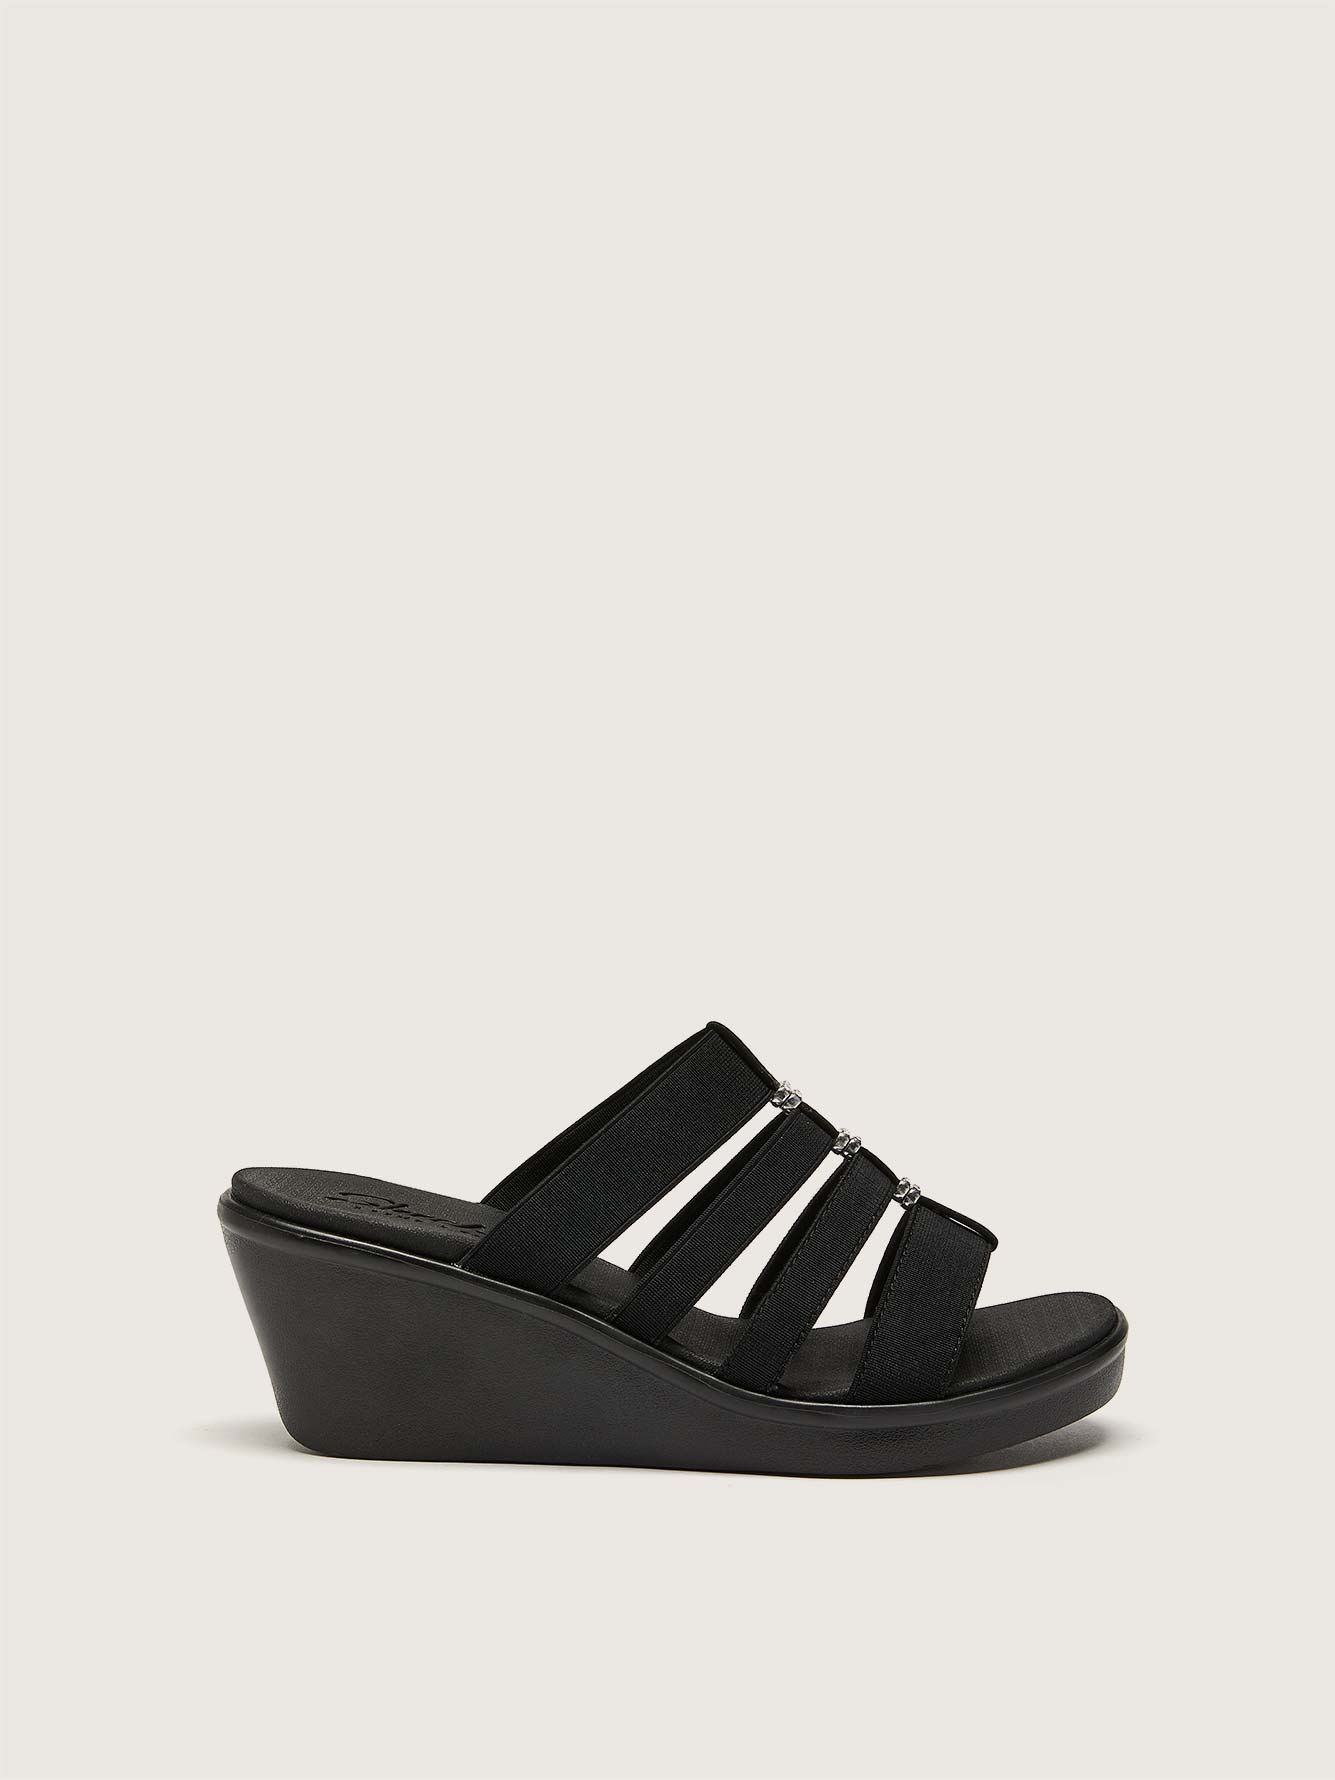 Wide Strappy Wedge Sandal - Skechers